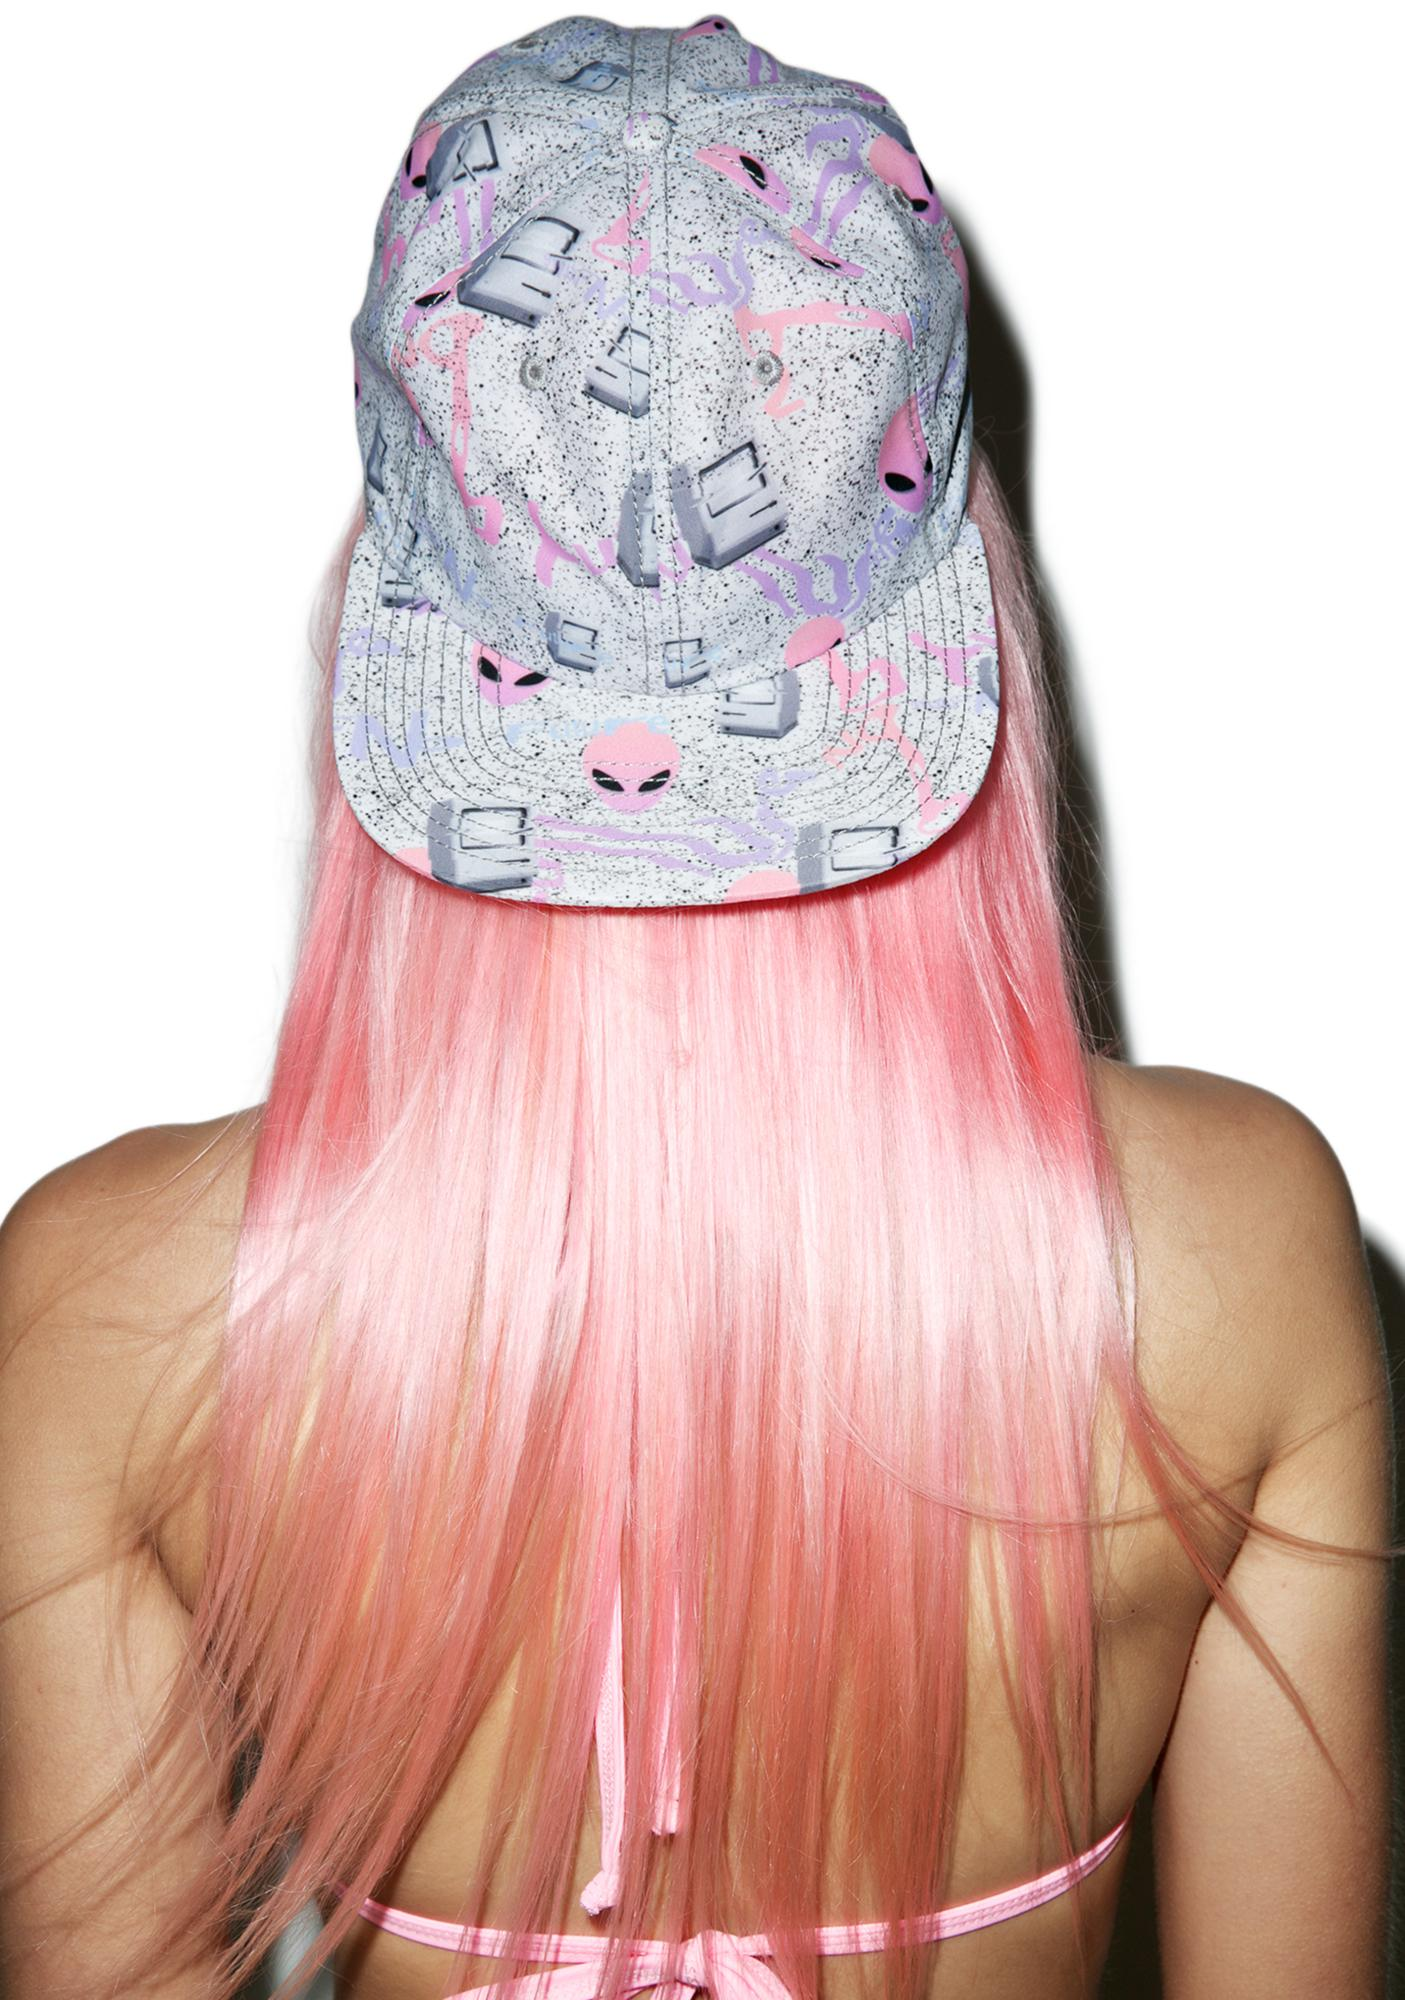 CRSHR Alien Speckled Cyber Punk Hat